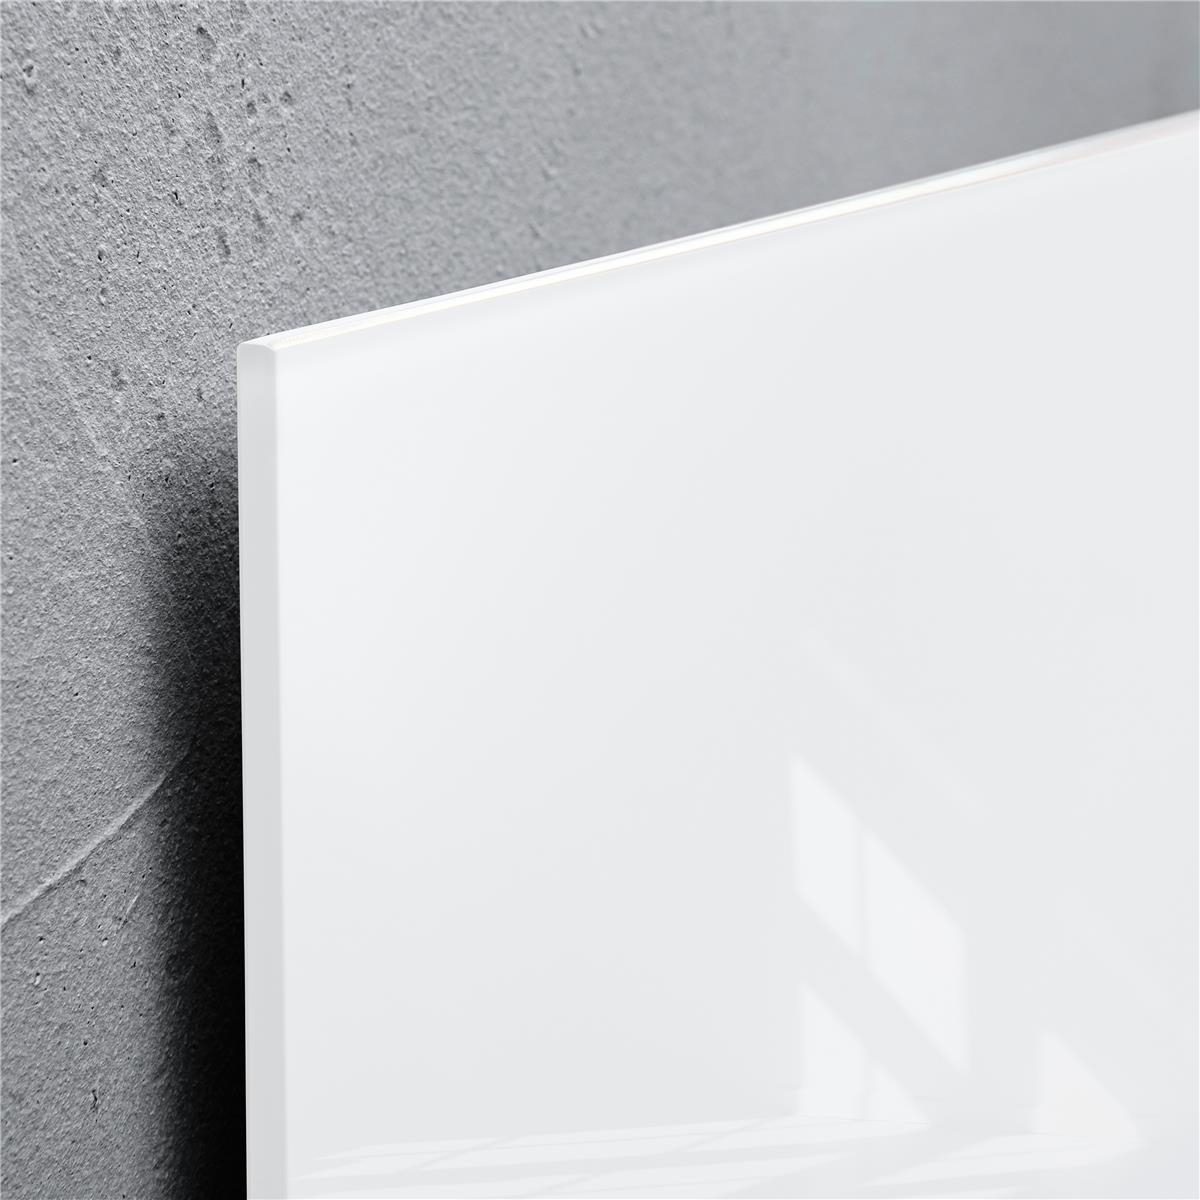 Sigel Artverum High Quality Tempered Glass Magnetic Board With Fixings 1000x650mm White Ref GL141